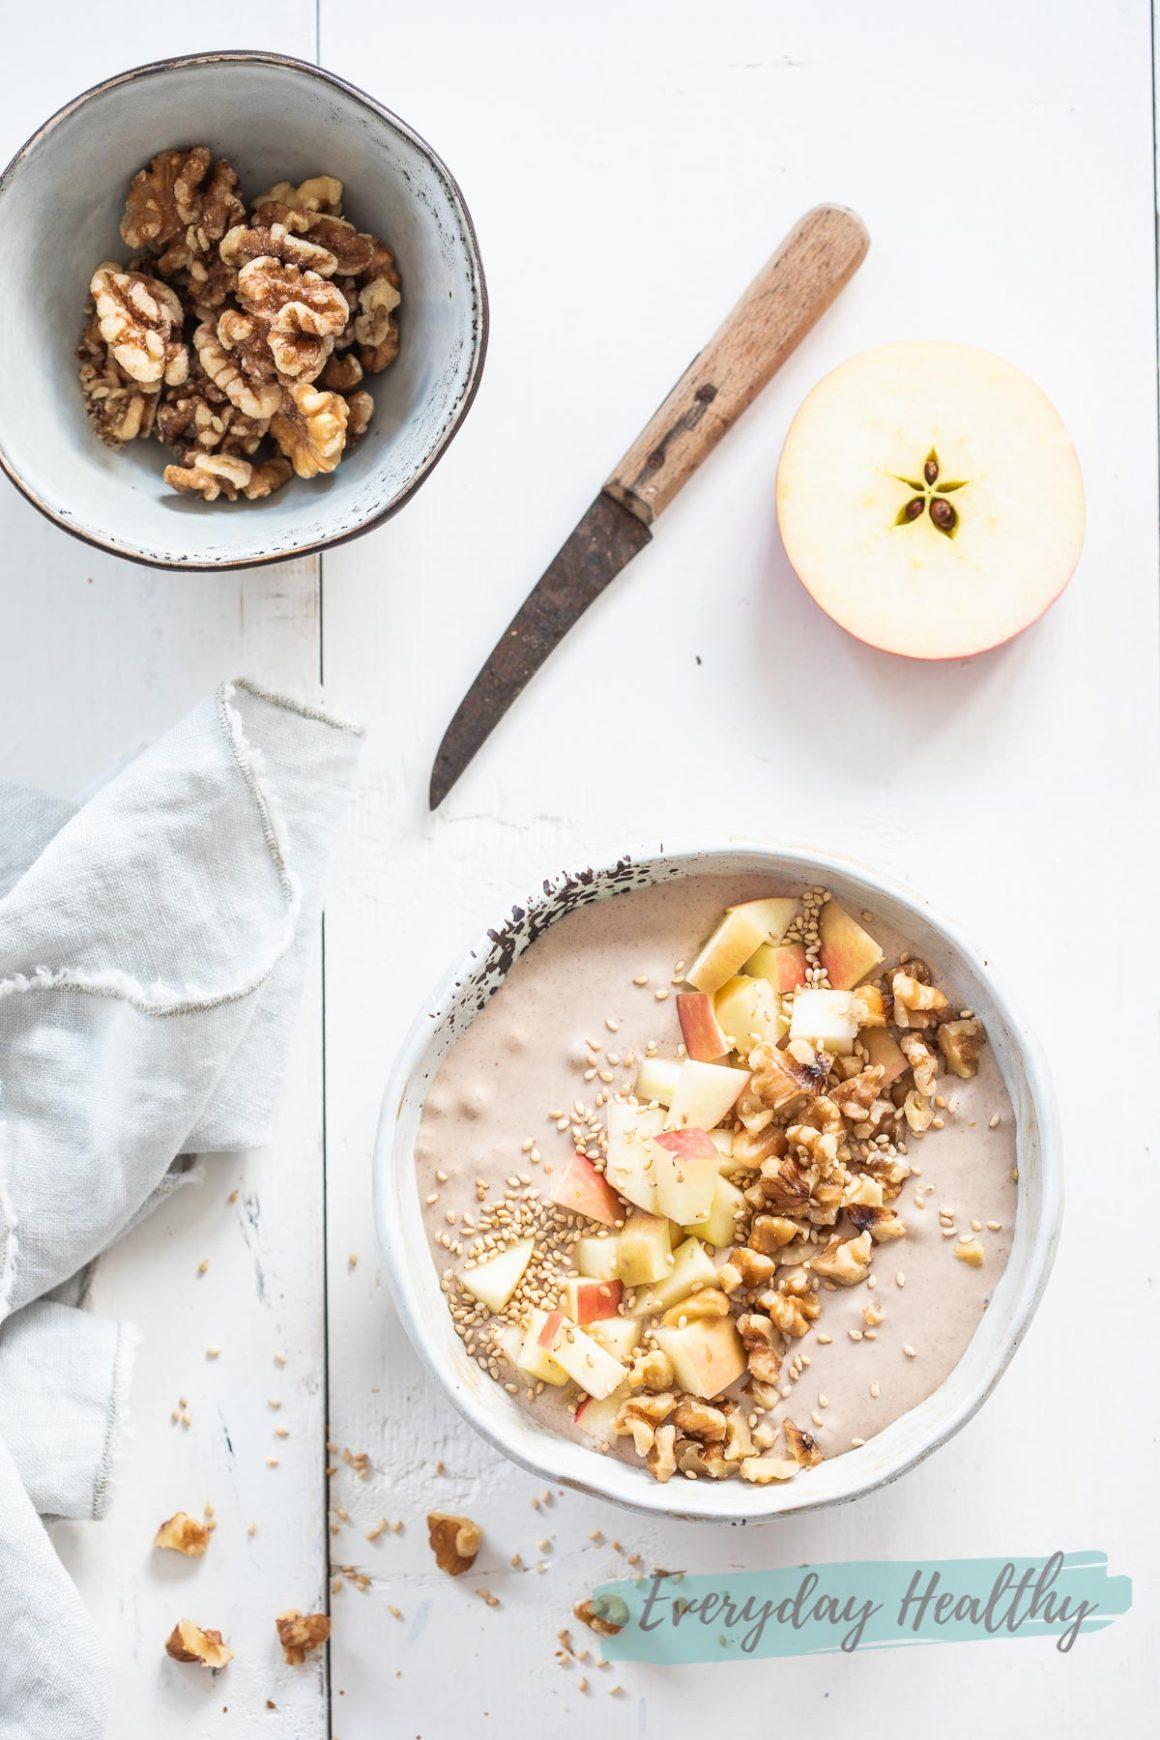 Smoothiebowl met appel